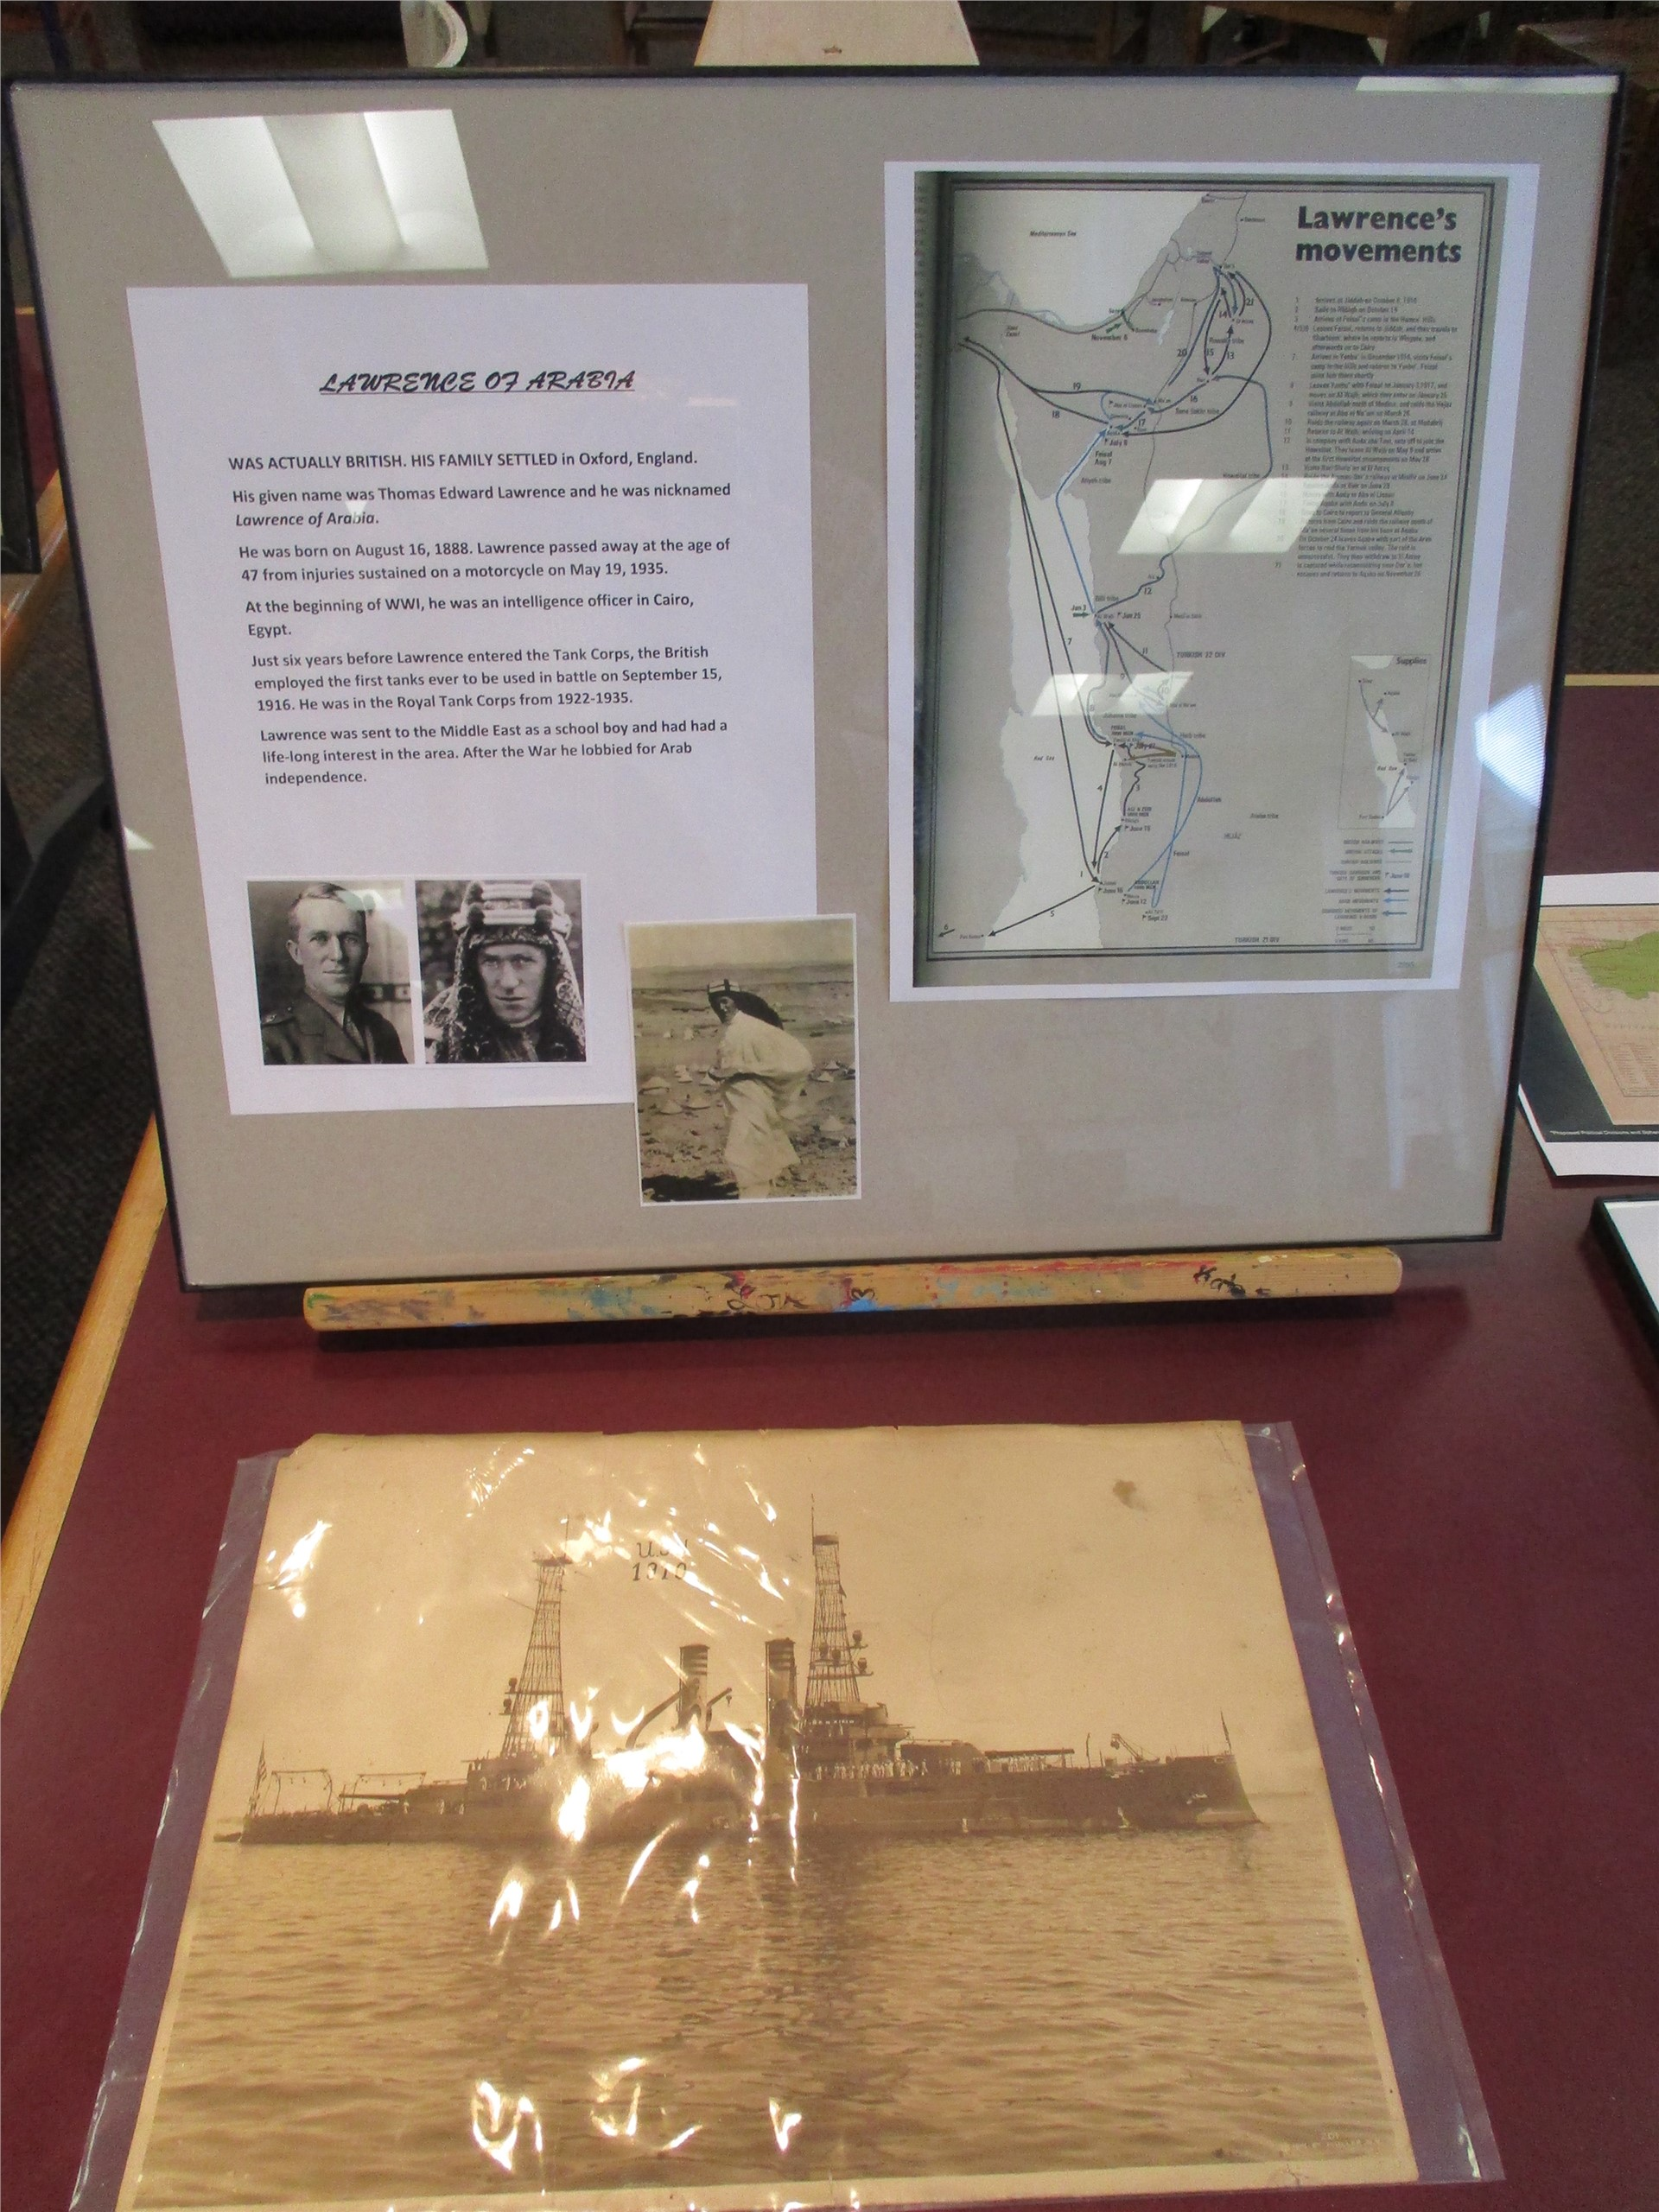 World War I exhibit: display of Lawrence of Arabia overview and map.